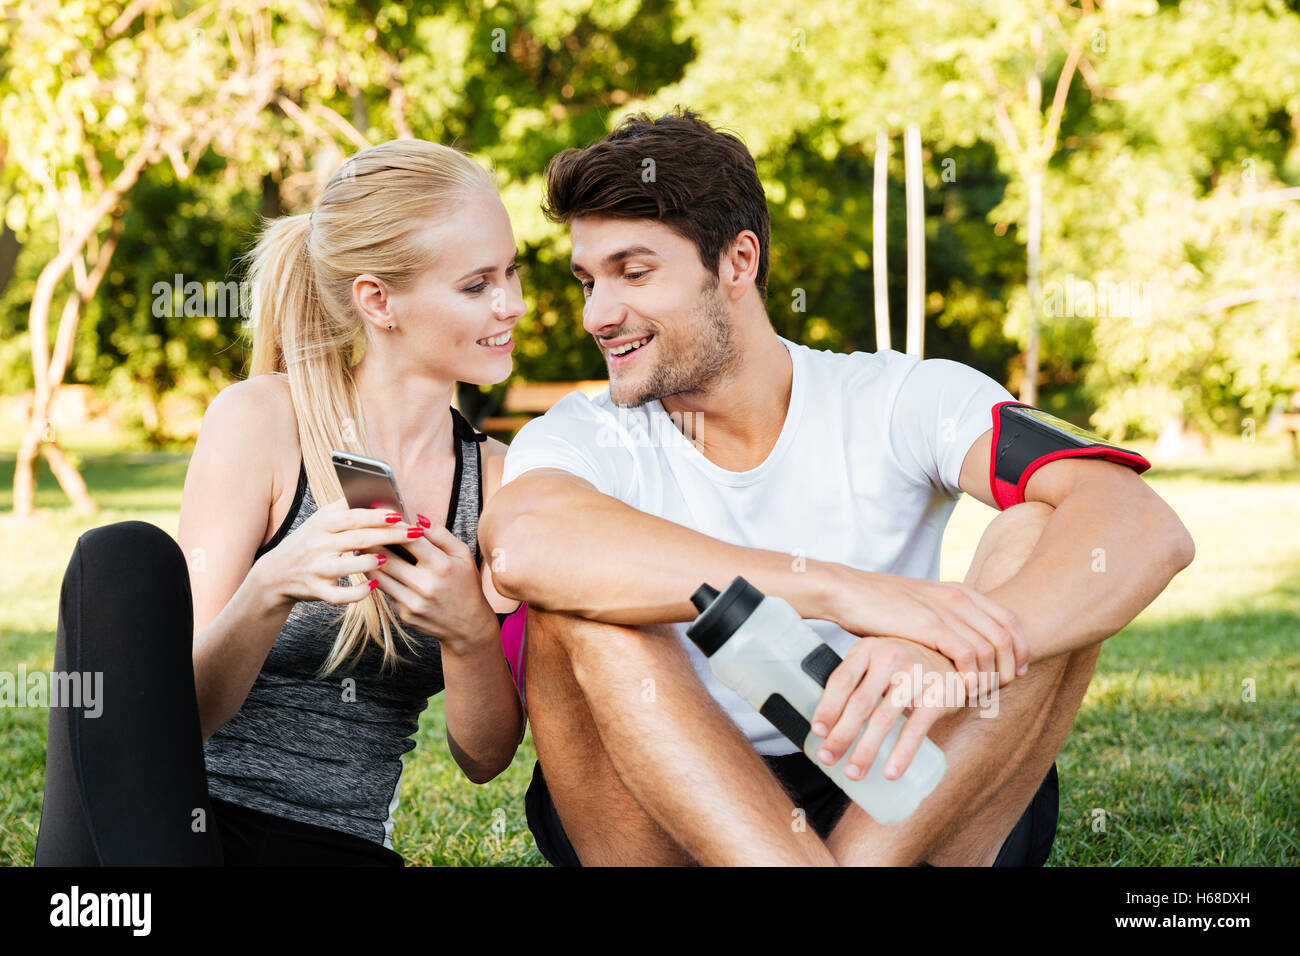 Smiling young woman and personal trainer with smartphone resting after jogging outdoors - Stock Image